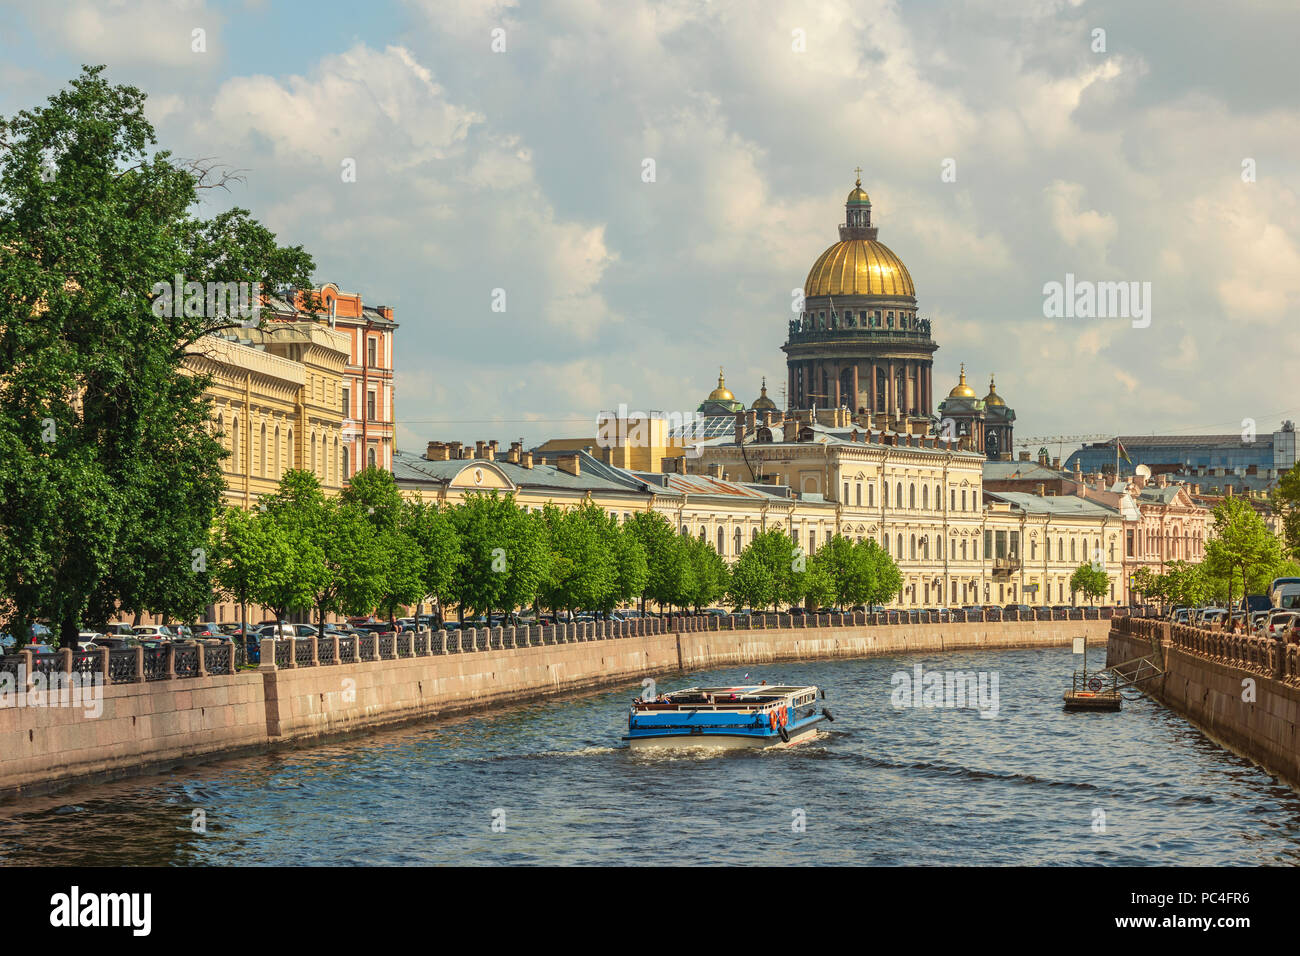 Saint Petersburg city skyline at Saint Isaac Cathedral, Saint Petersburg, Russia - Stock Image